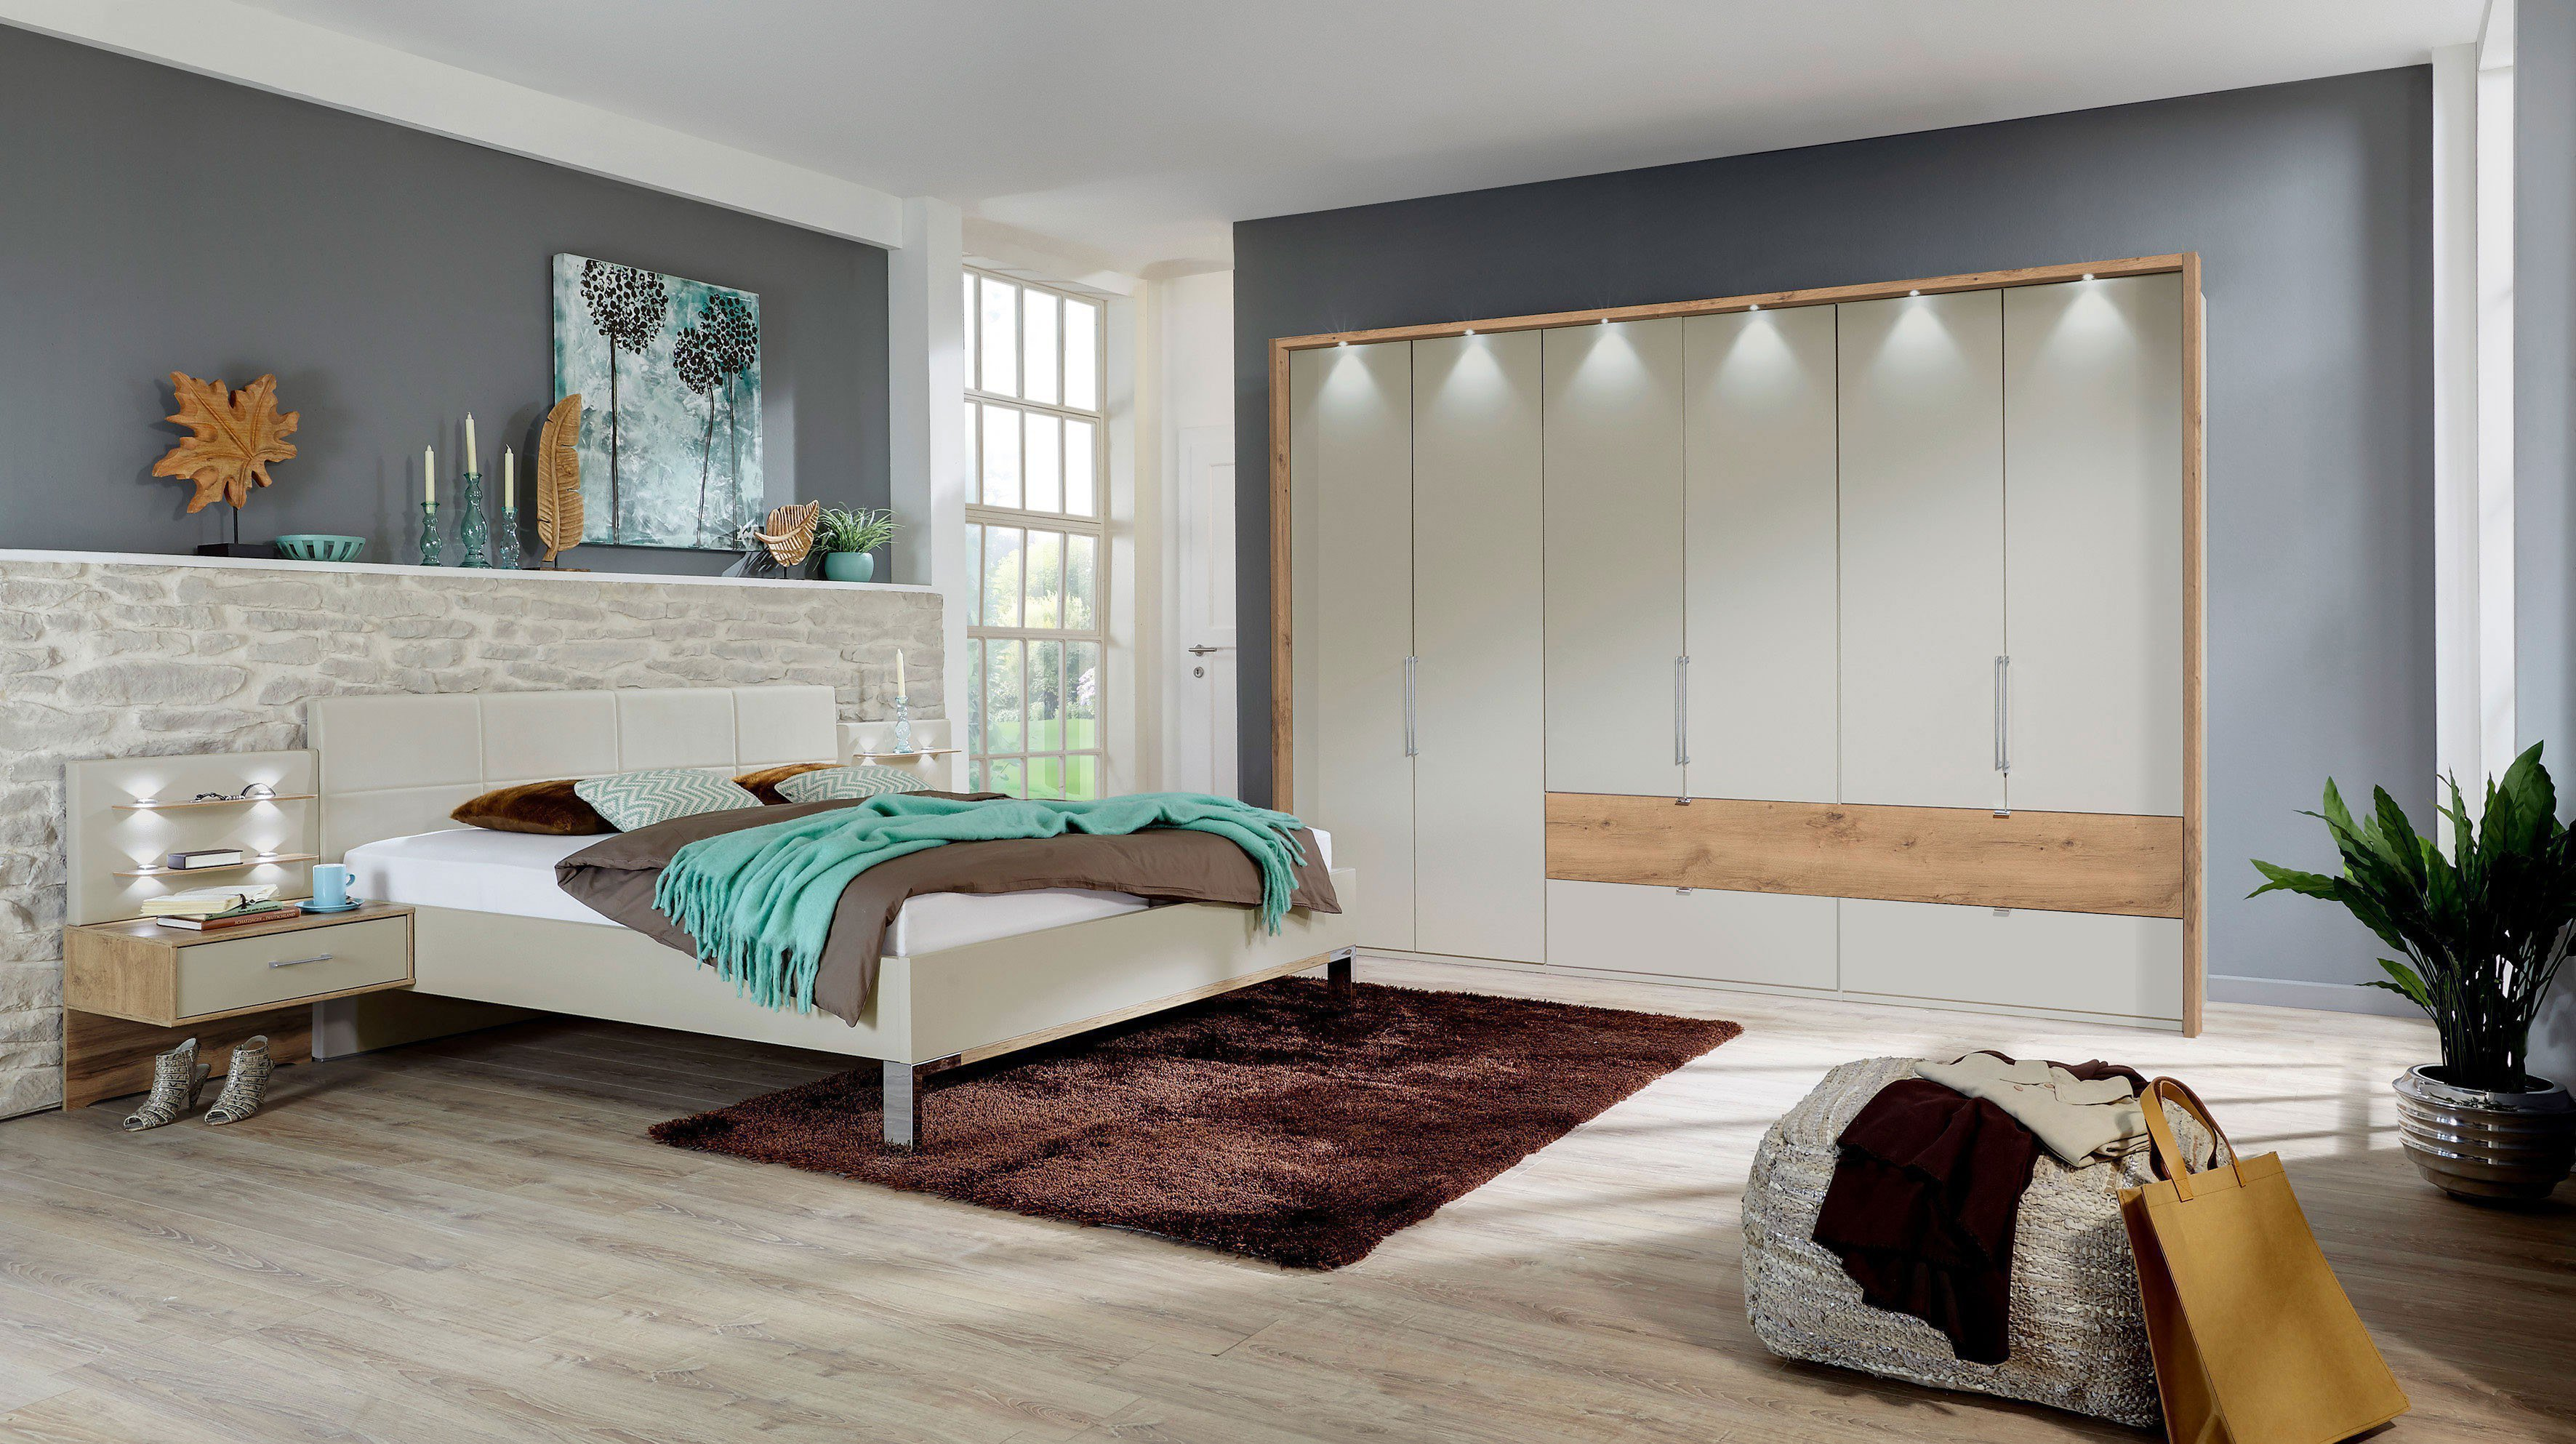 wiemann lyon schlafzimmer set 4 teilig m bel letz ihr online shop. Black Bedroom Furniture Sets. Home Design Ideas